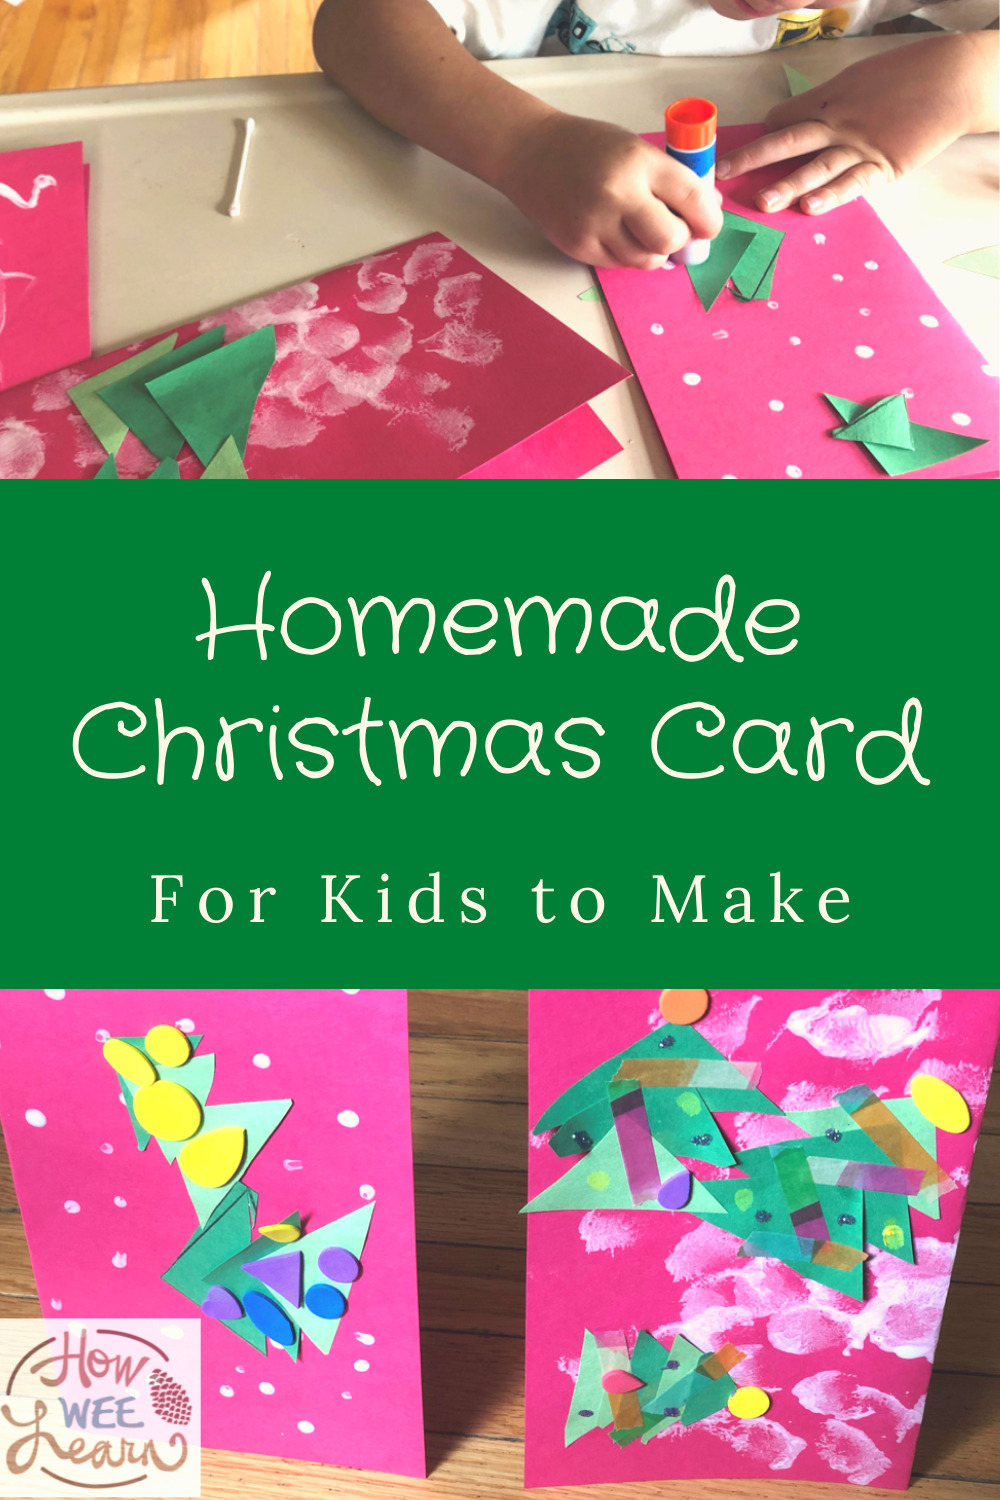 This is a beautiful Homemade Christmas Card for Kids to Make. The kids had so much fun making it!